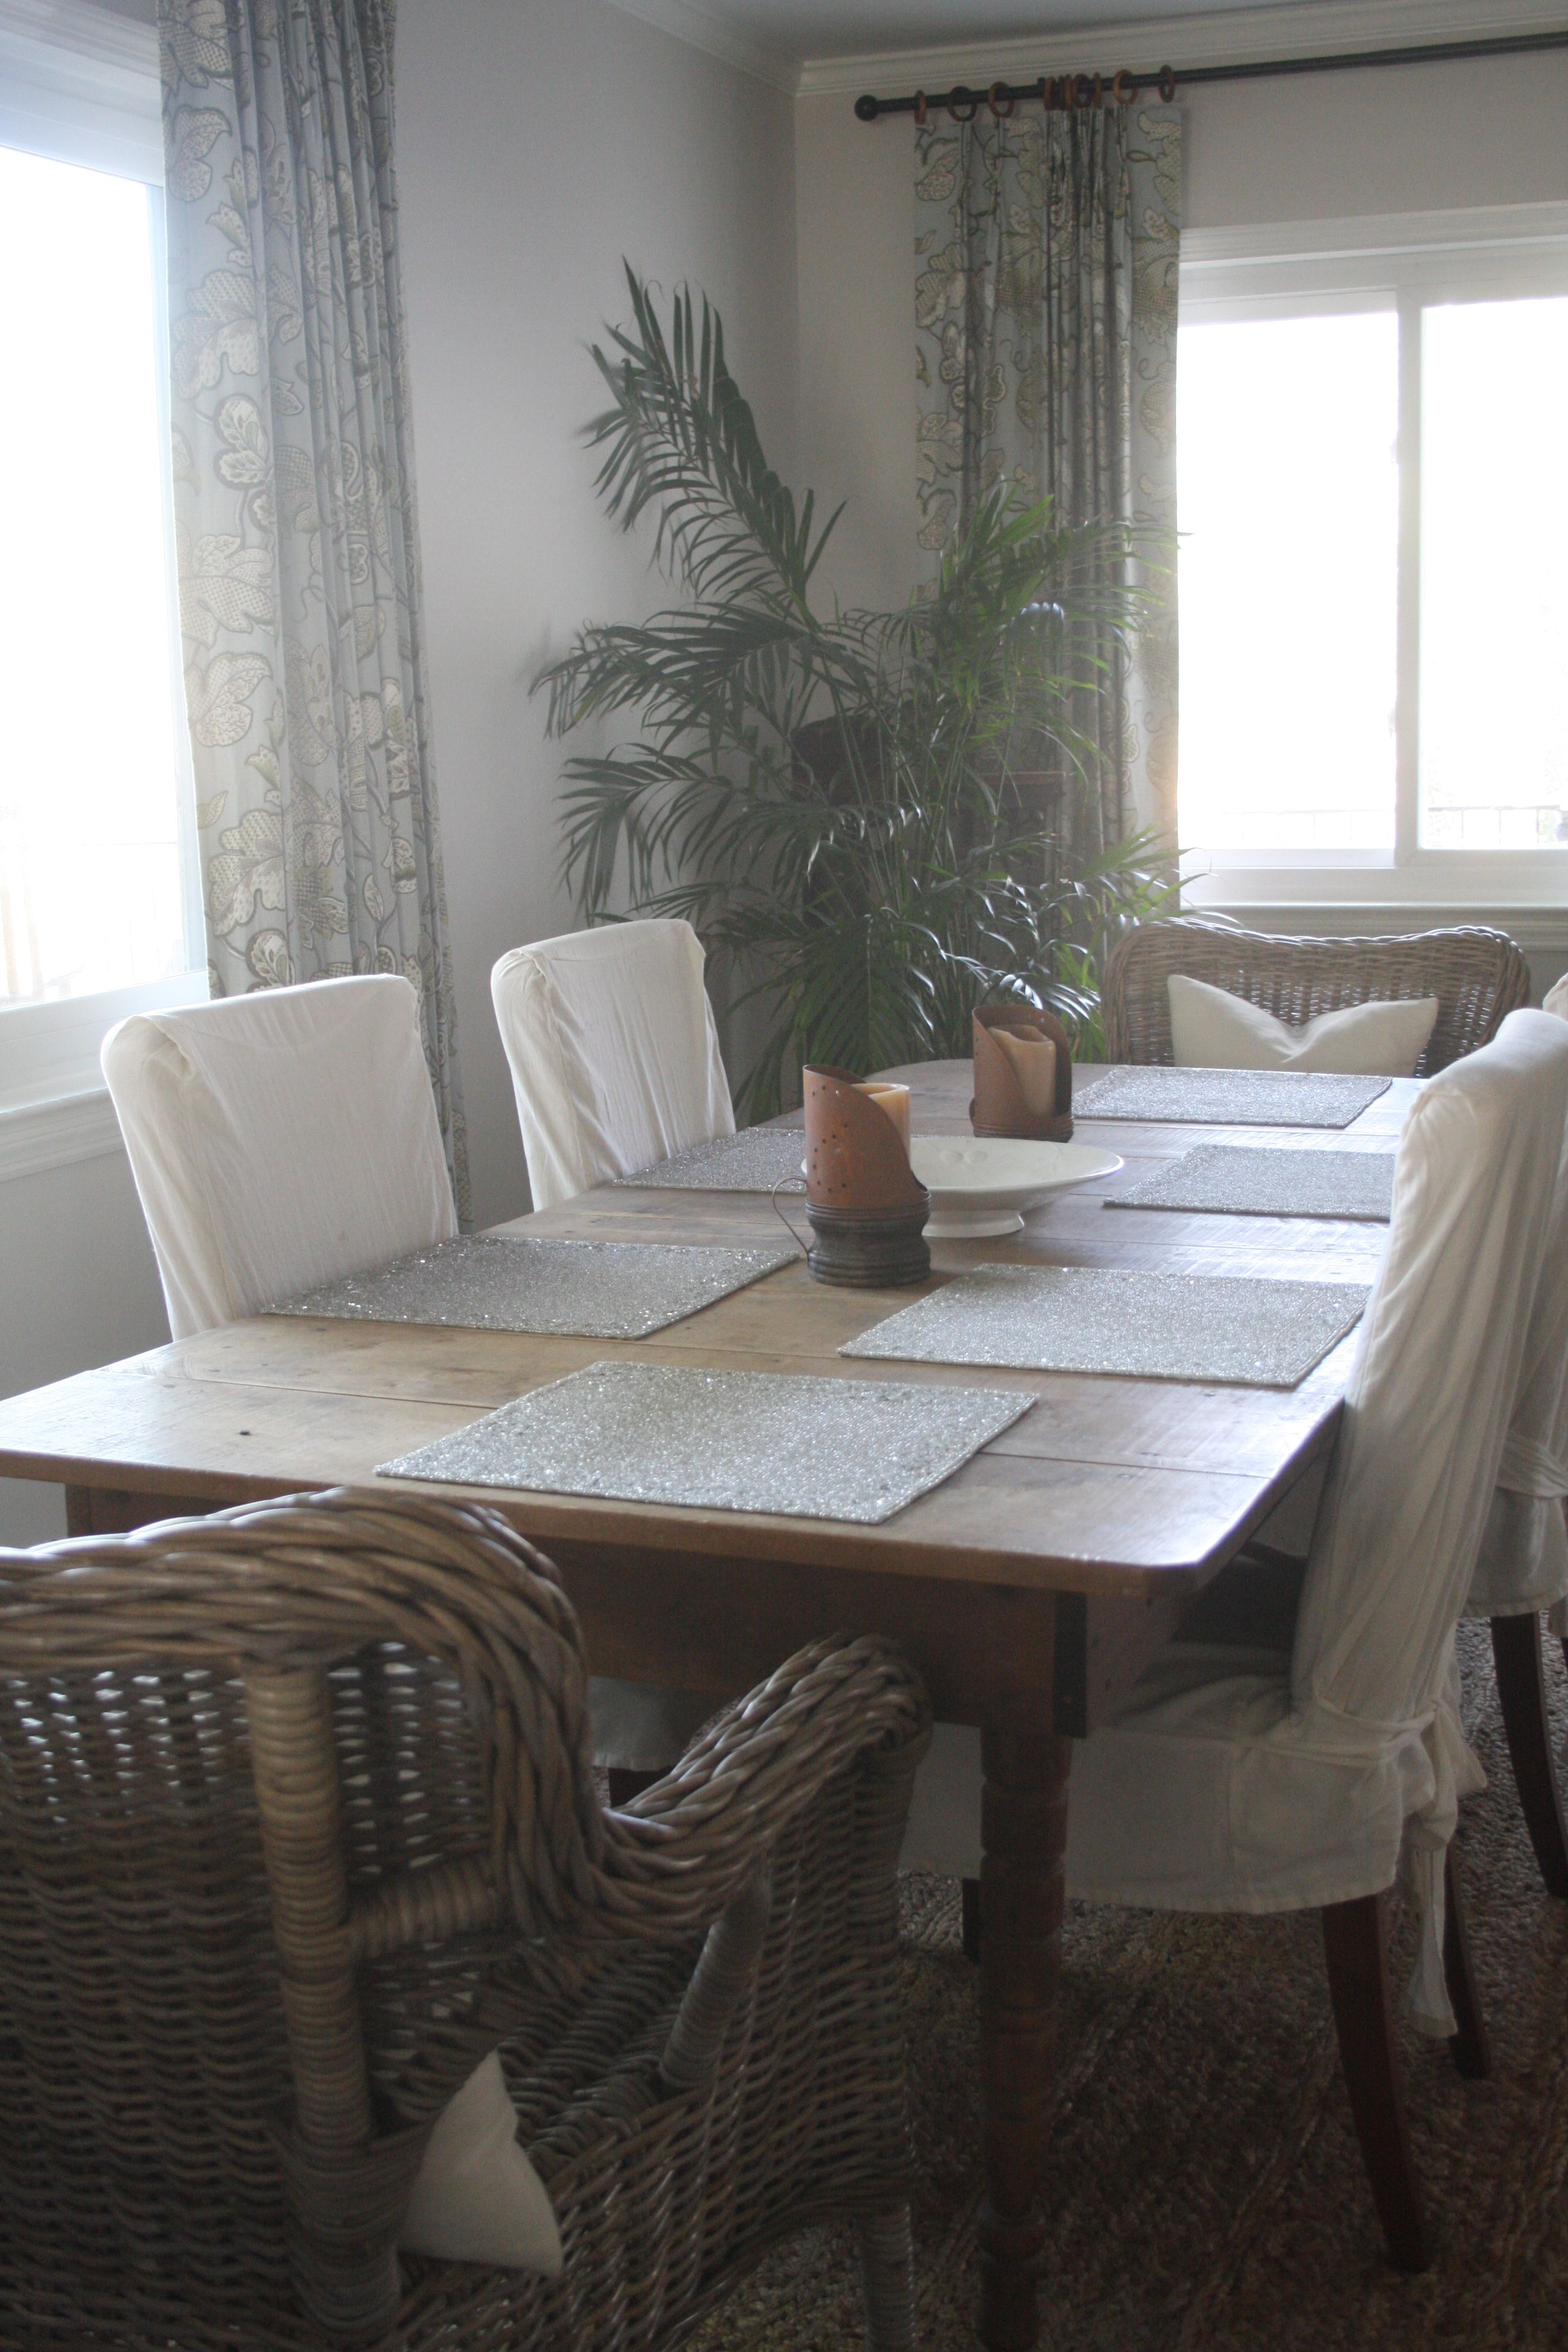 william sonoma chair covers rental birmingham al kitchen dining room details ikea and chairs